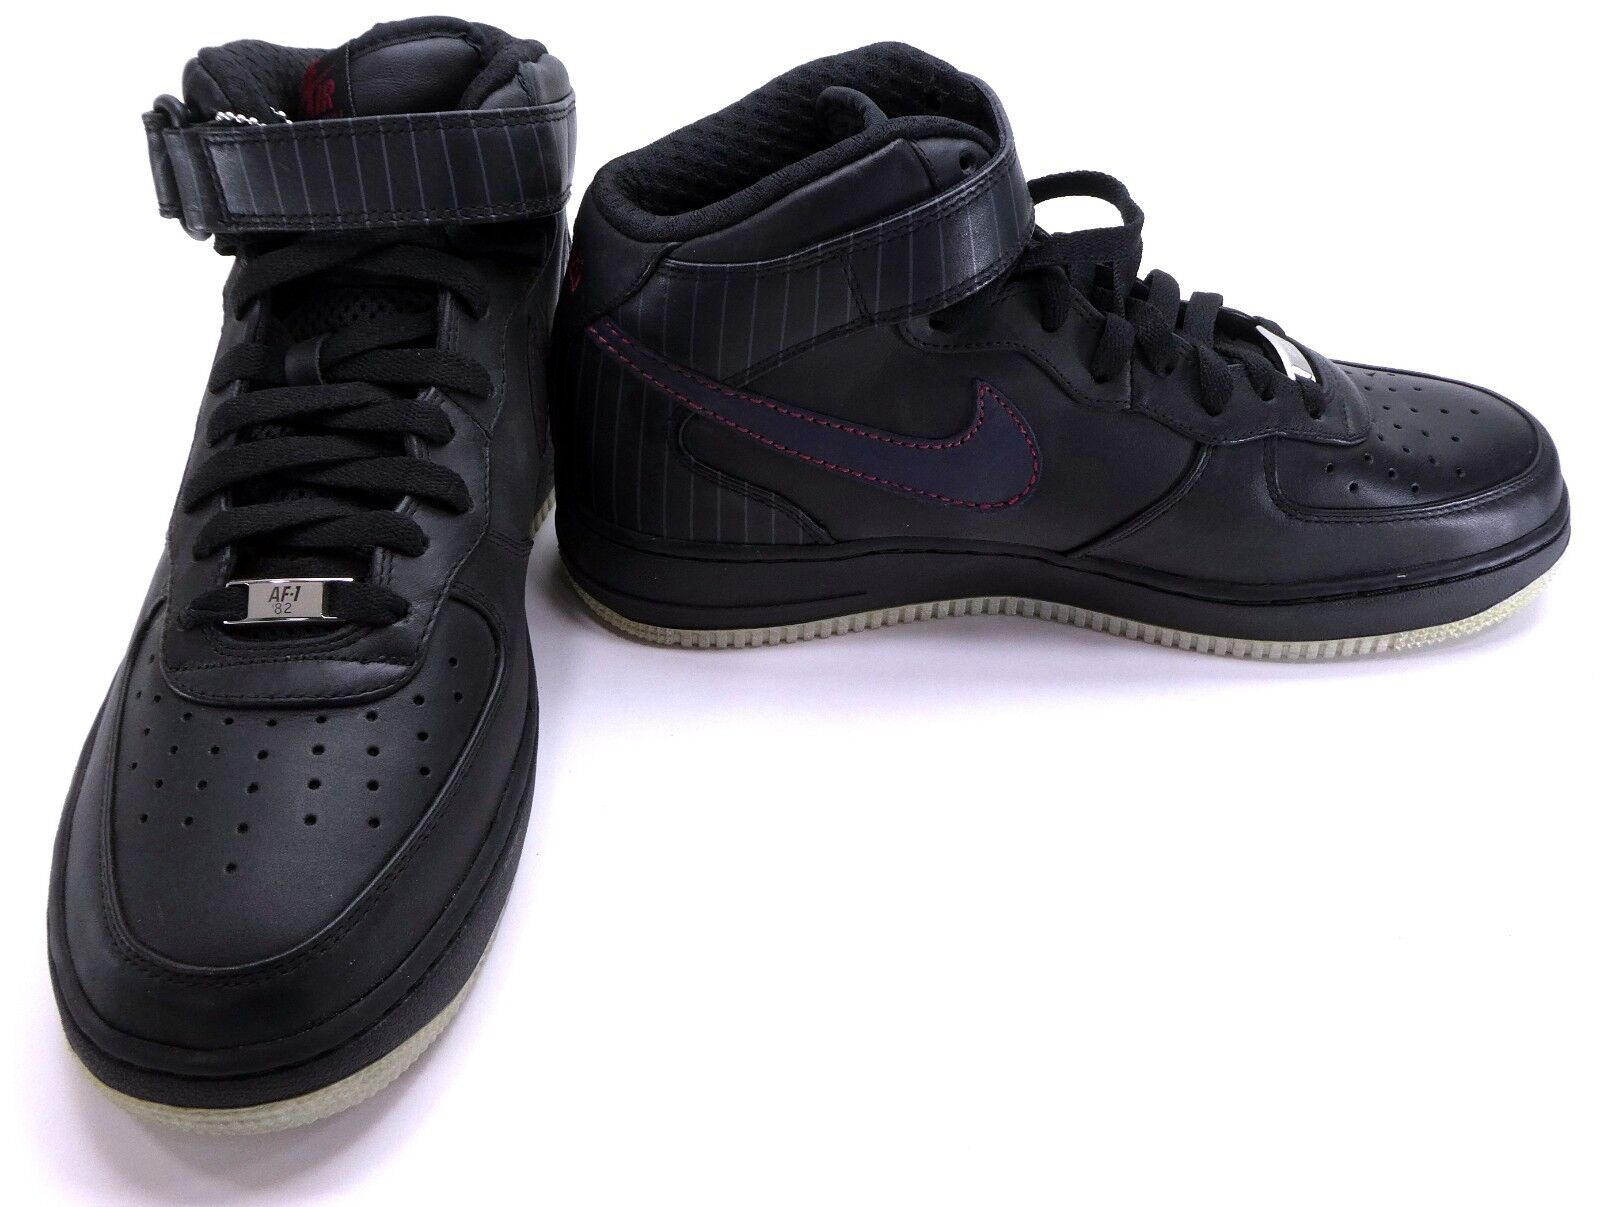 Nike shoes Air Force 1 Mid Premium Black Obsidian Red Sneakers Size 9